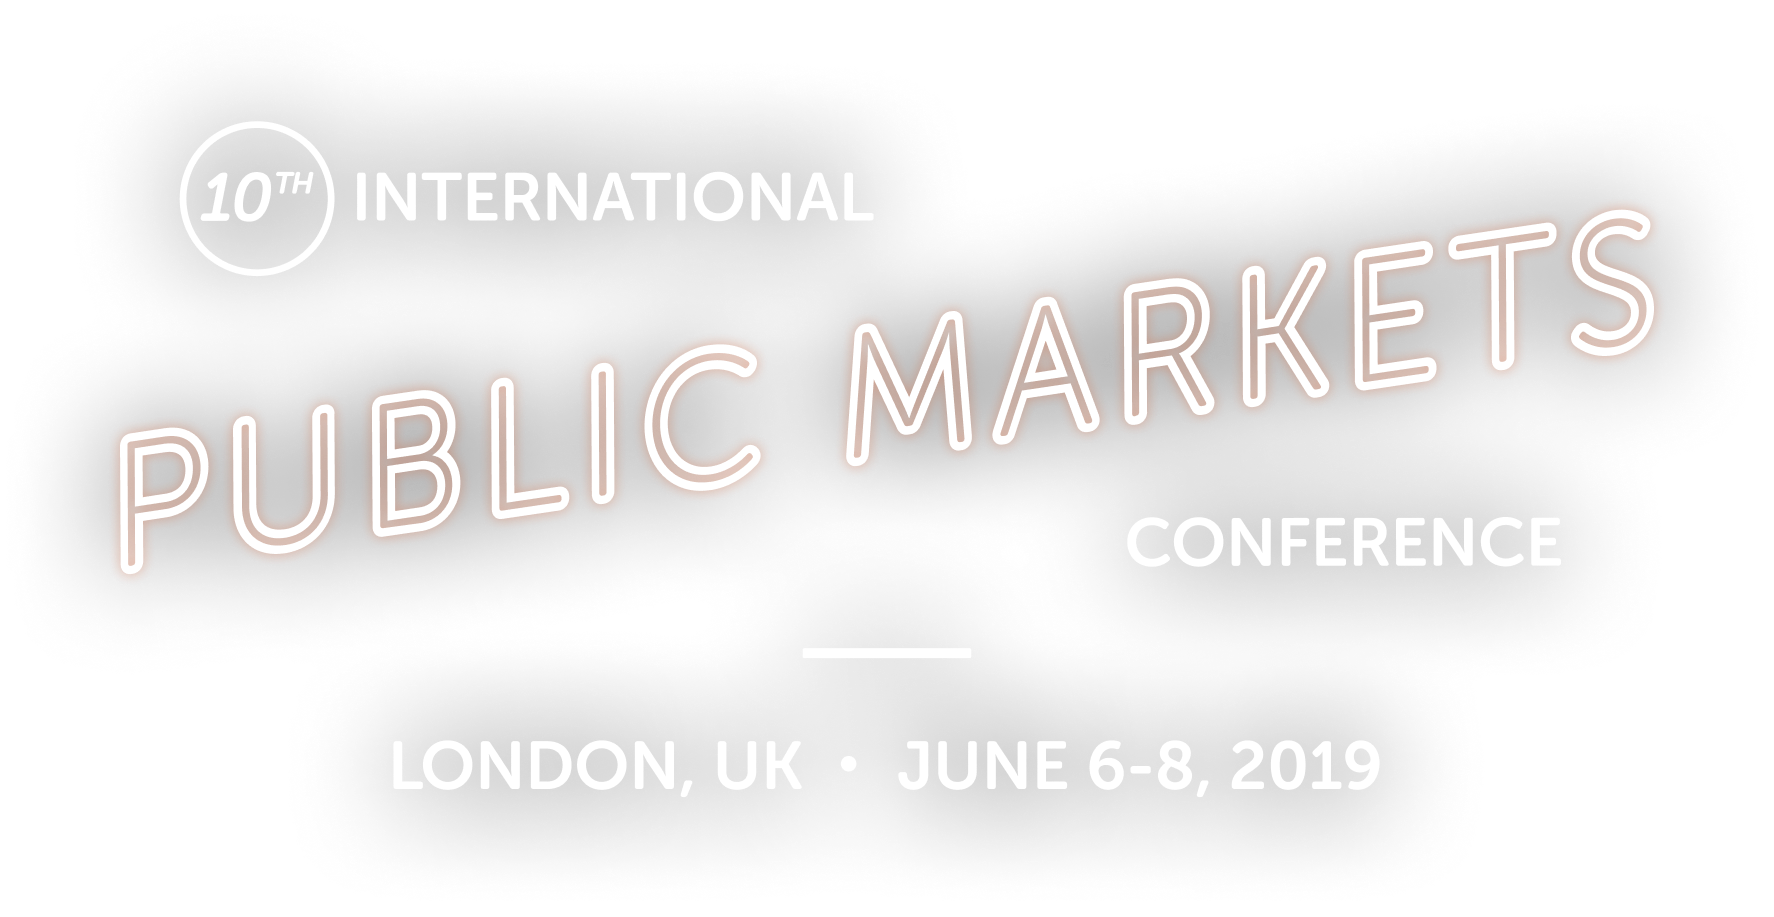 10th International Public Markets Conference